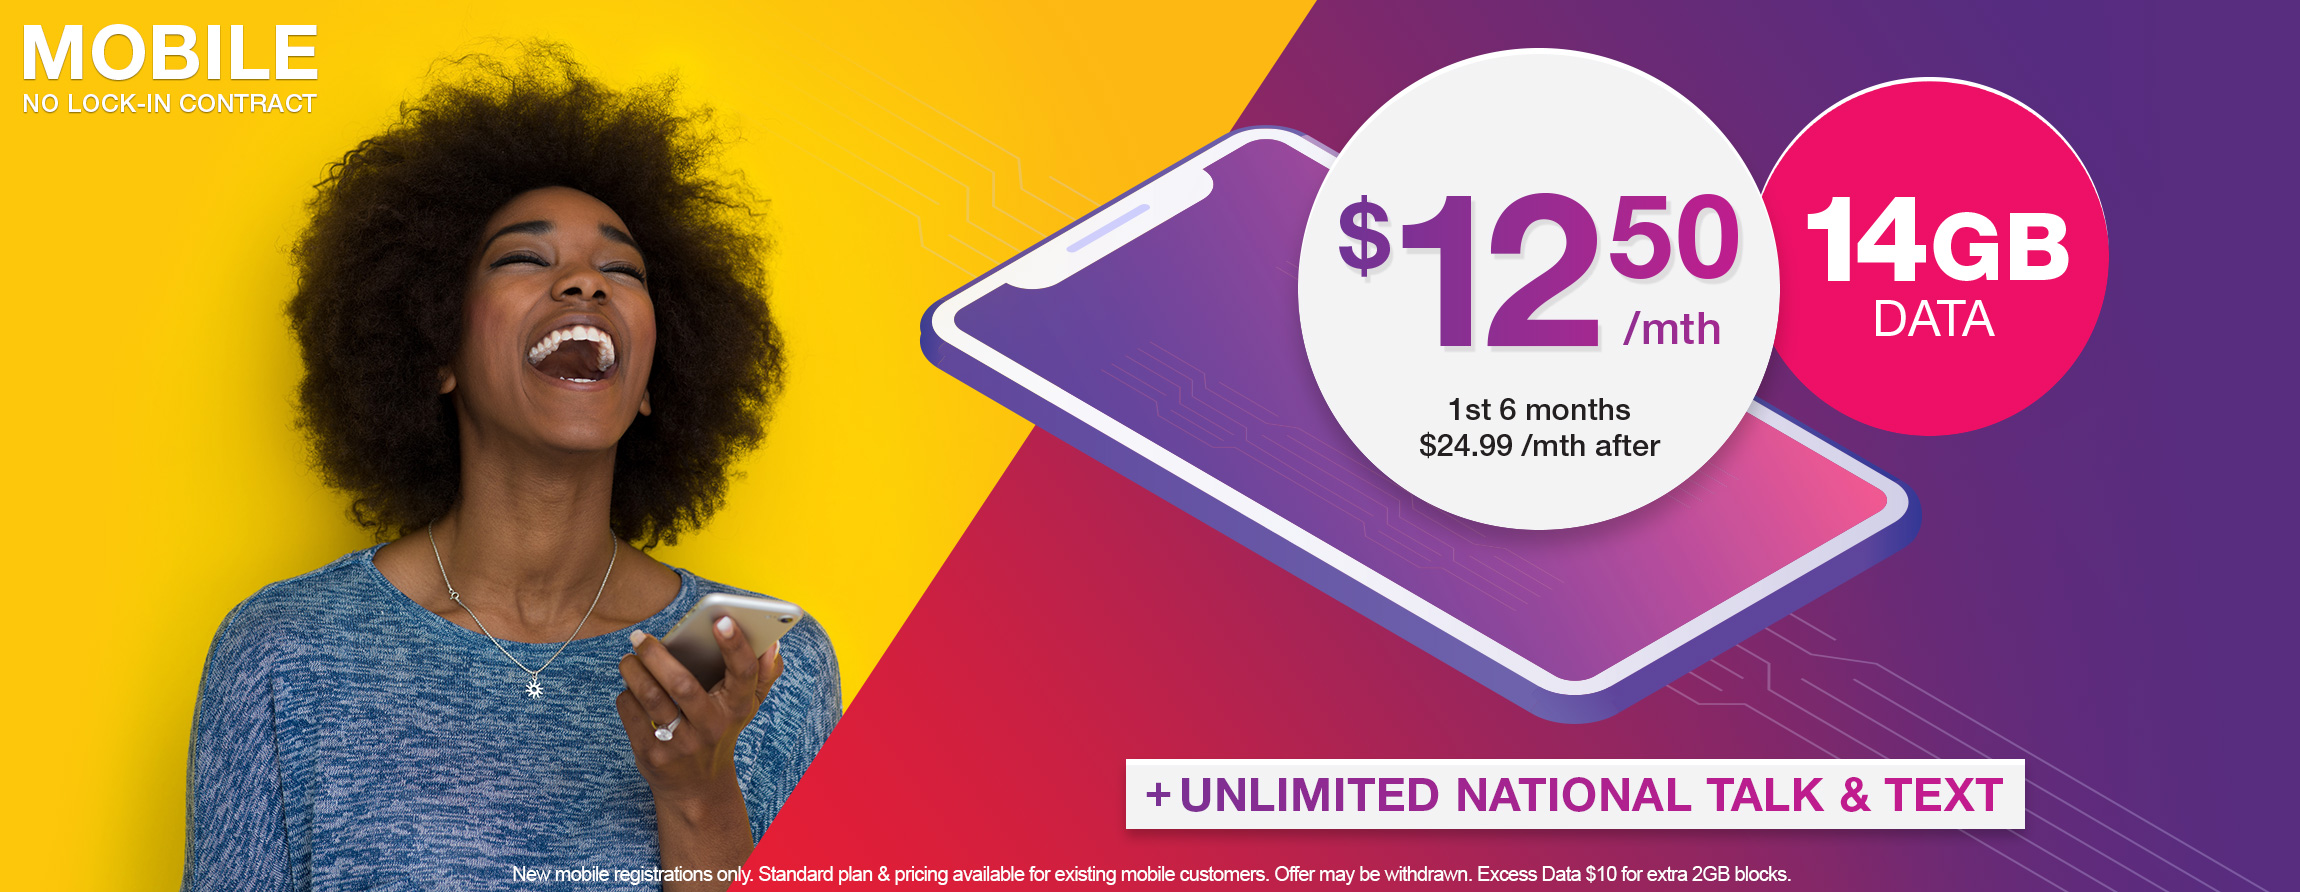 TPG no lock-in contract SIM only 4G mobile plan includes 14GB Data and Unlimited AU Talk & Text